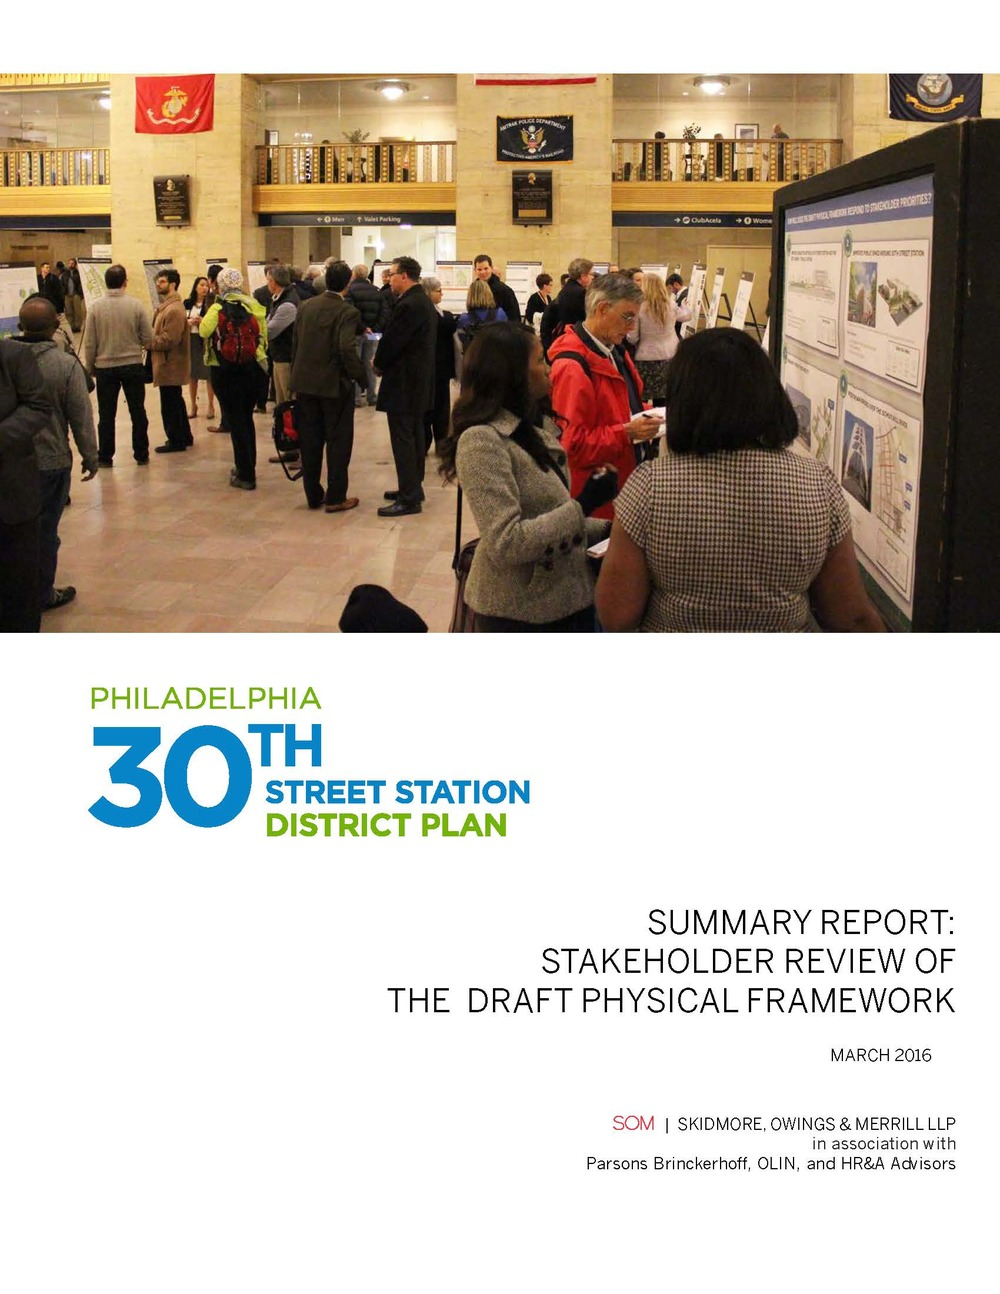 Stakeholder Review of the Draft Physical Framework  (PDF, 14 MB), March 2016